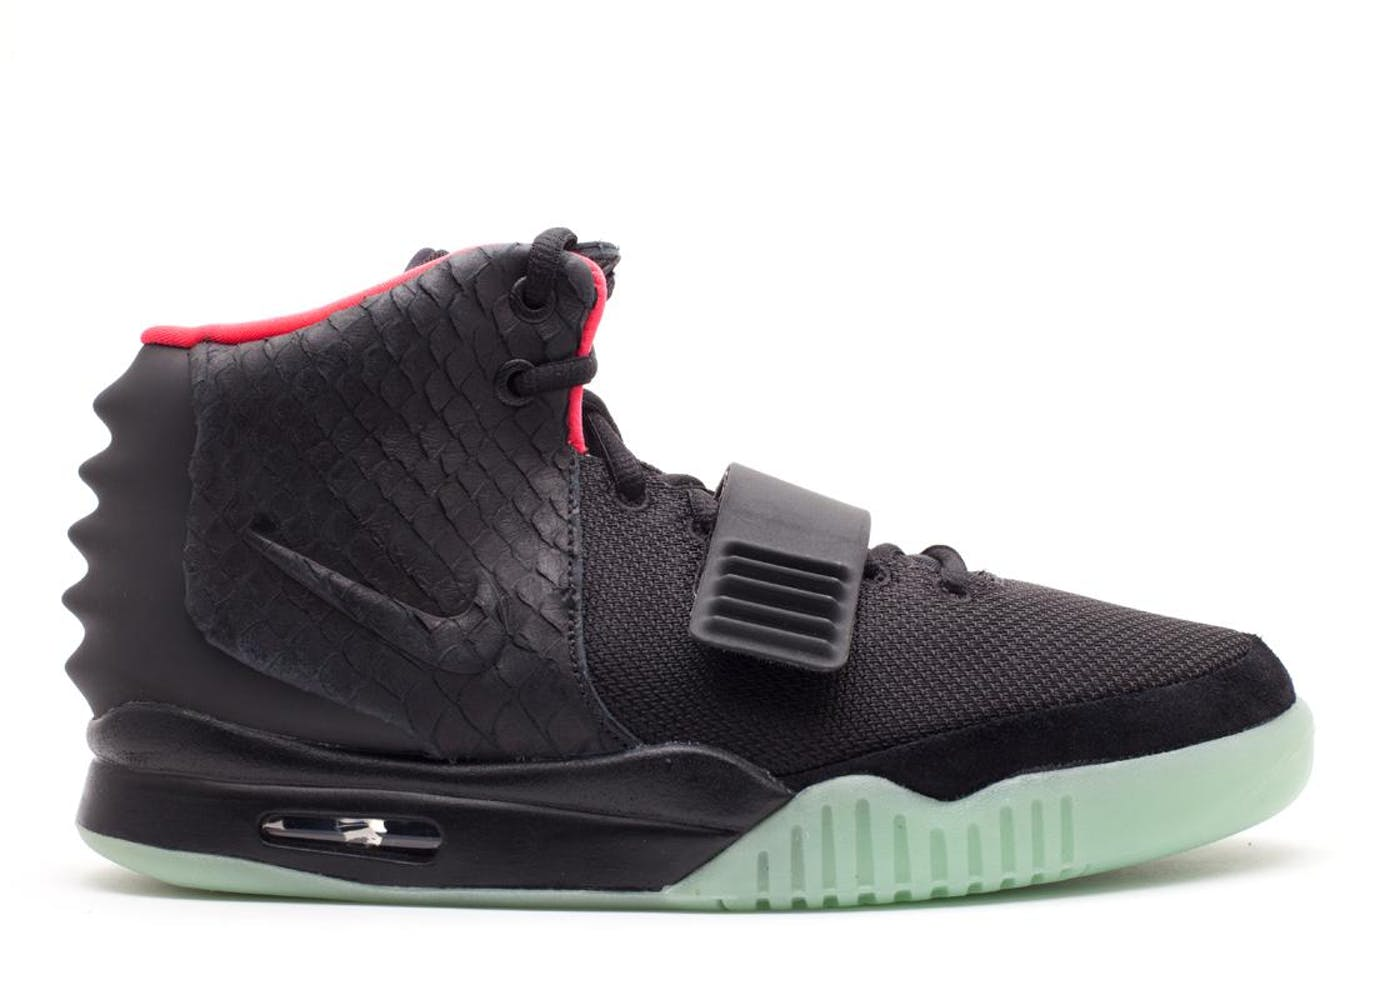 Yeezy 2 Solar Red Air Yeezy 2 Solar Red